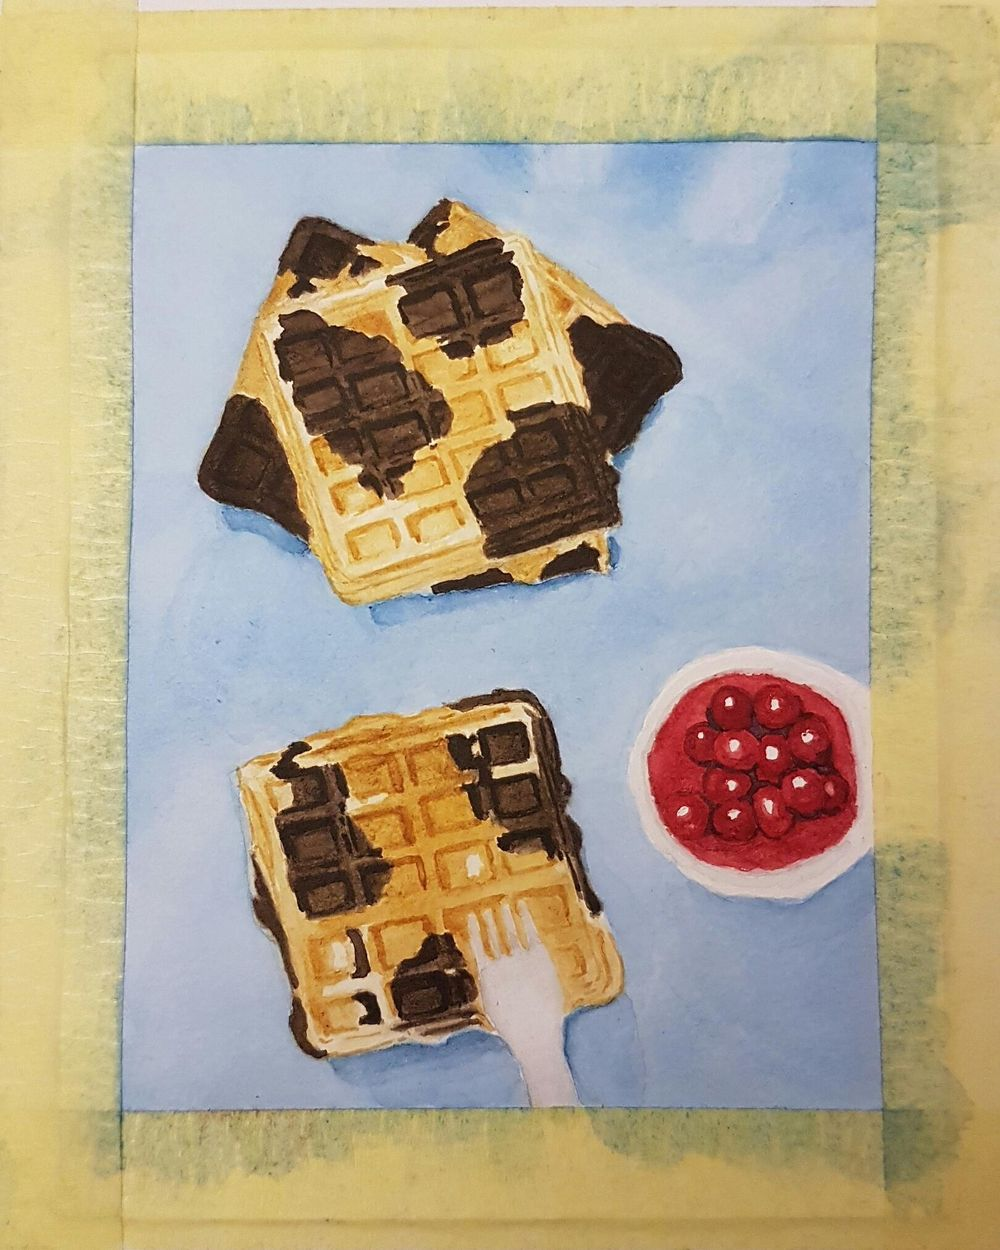 Practice Connecting things in Watercolor - Waffles - image 4 - student project